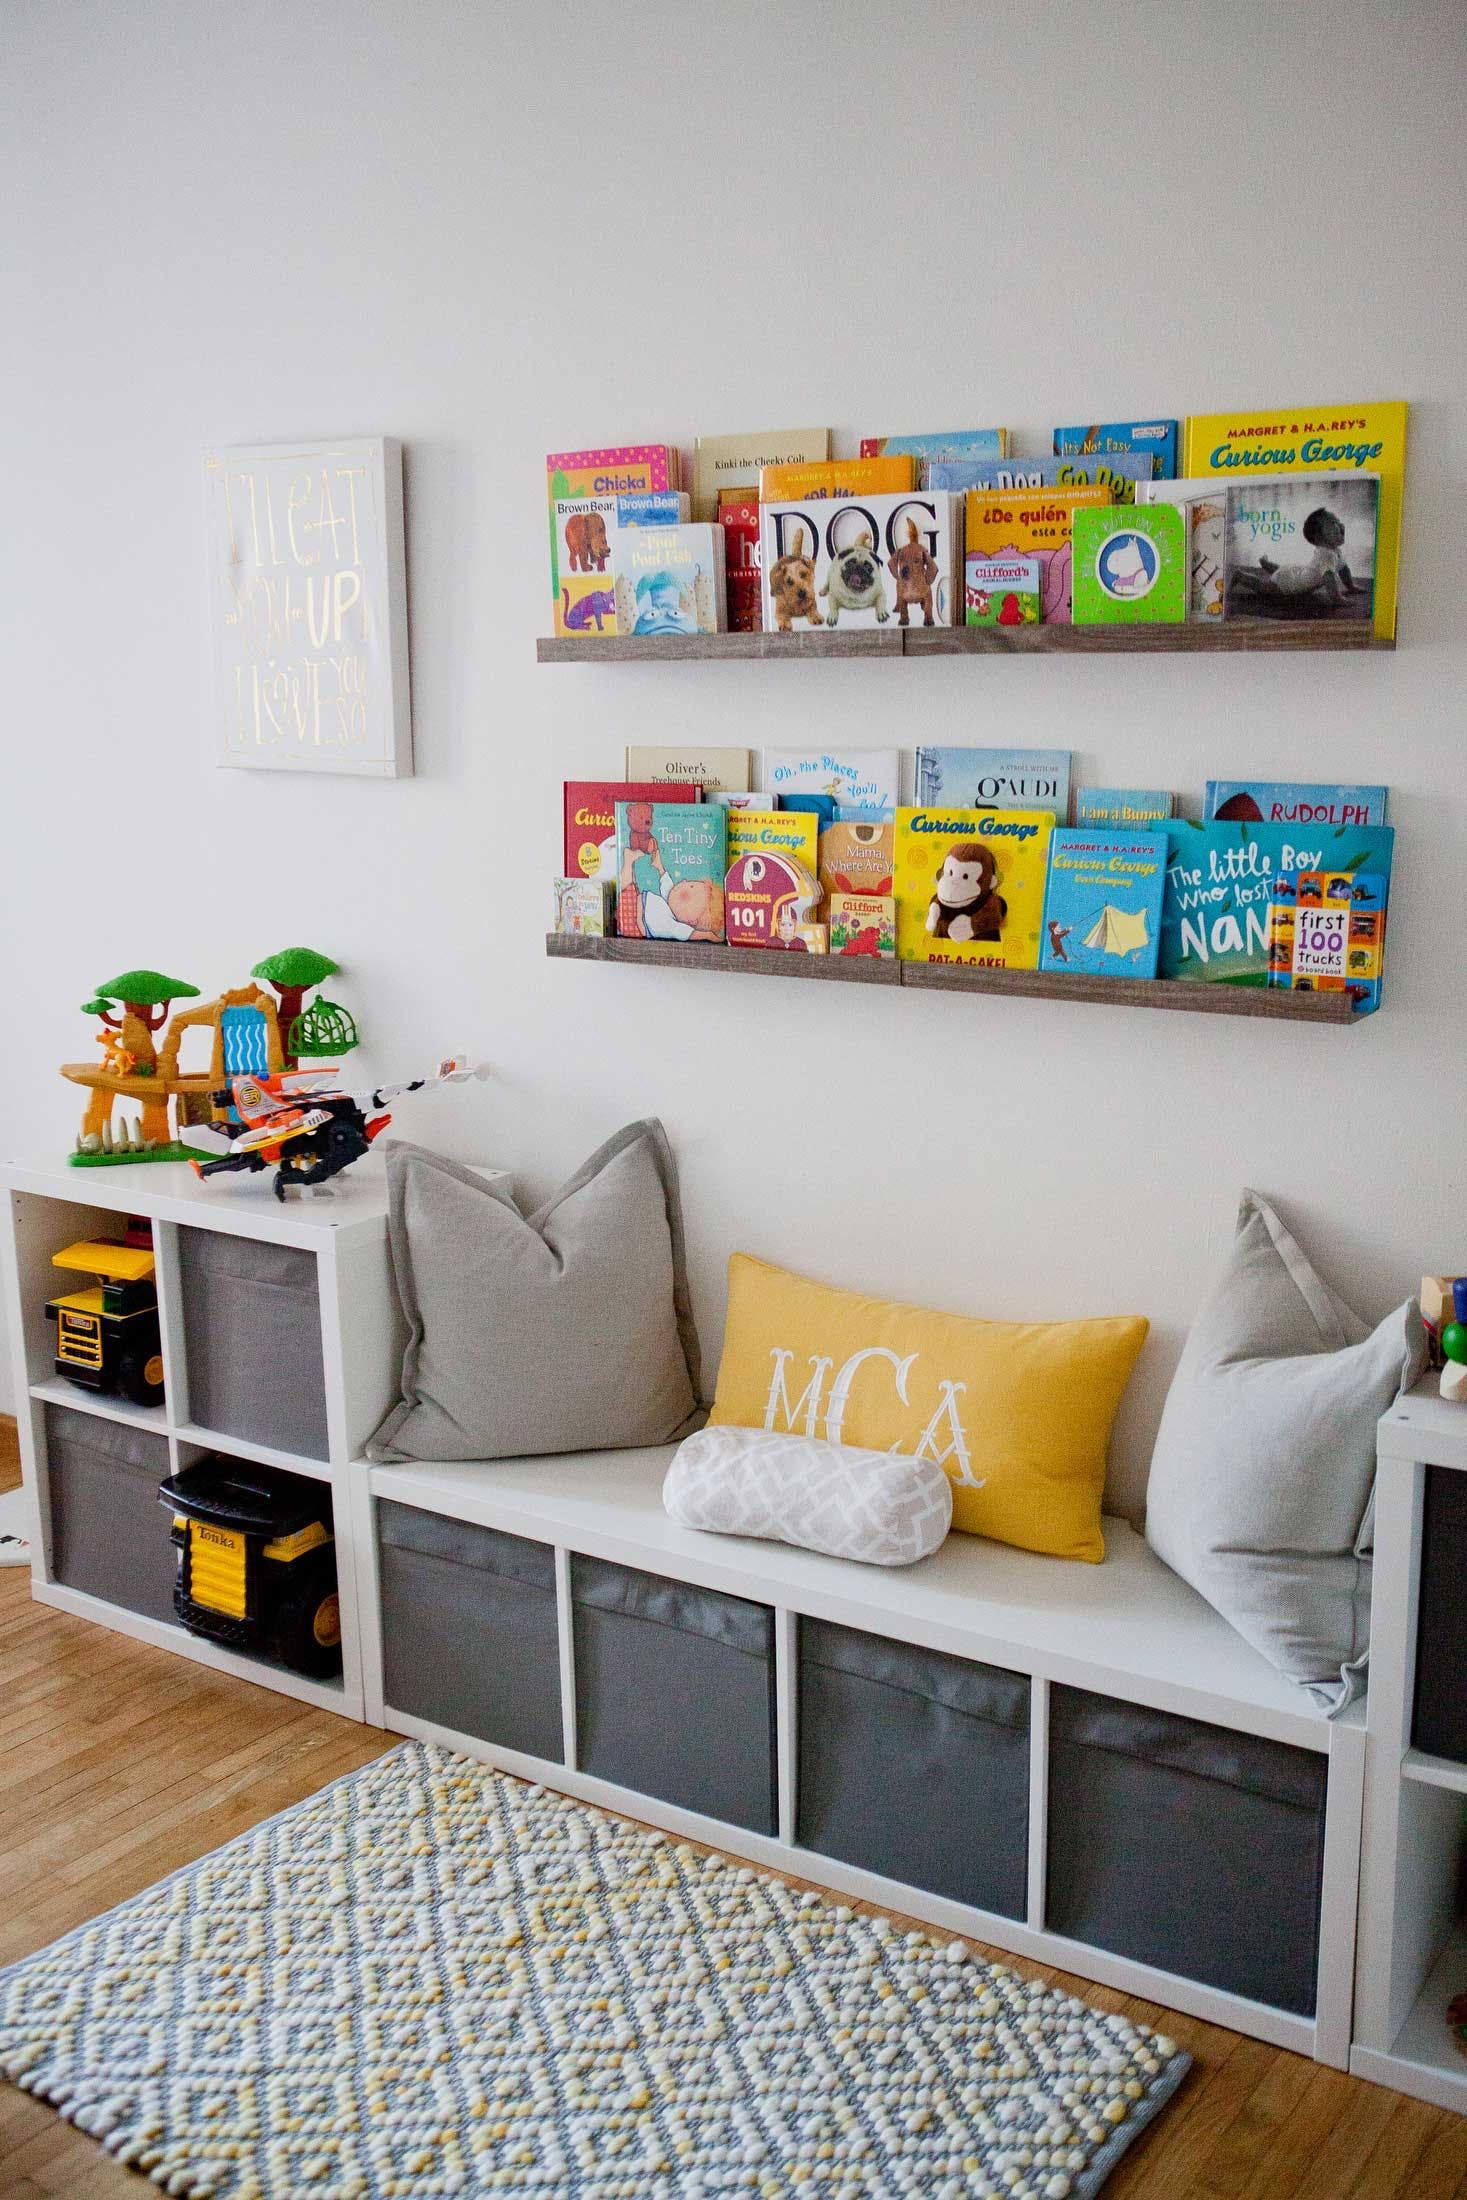 s ideas baby desk dreams with children made ikea reversible living playroom in kura are perfect full size additional box kids childrens and options pretty boxes toy ireland or beautiful seek create storage sleep bedroom room hide that boys blue white of furniture